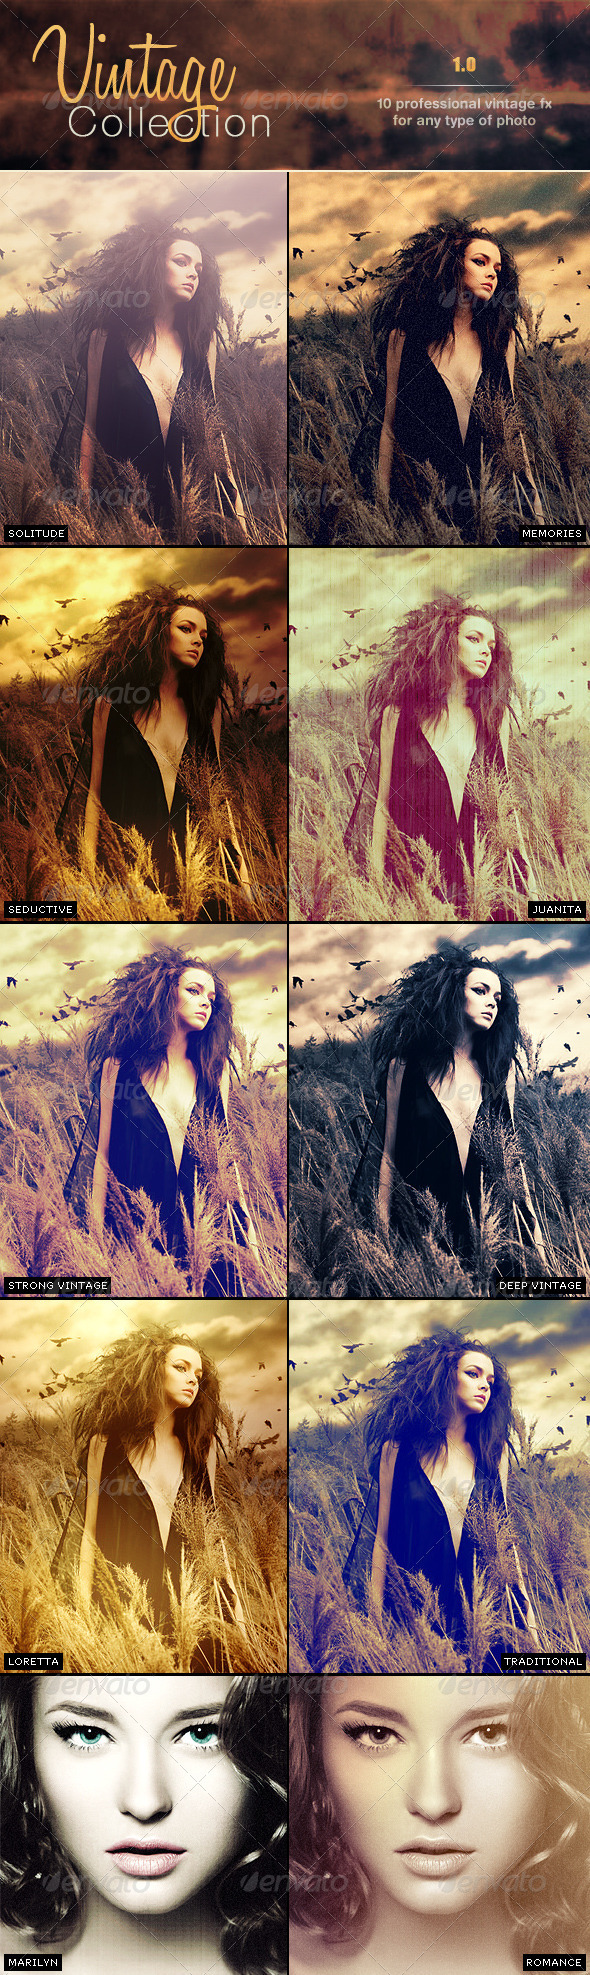 GraphicRiver Vintage Pro Collection Photo Effects Vol 1.0 3008629